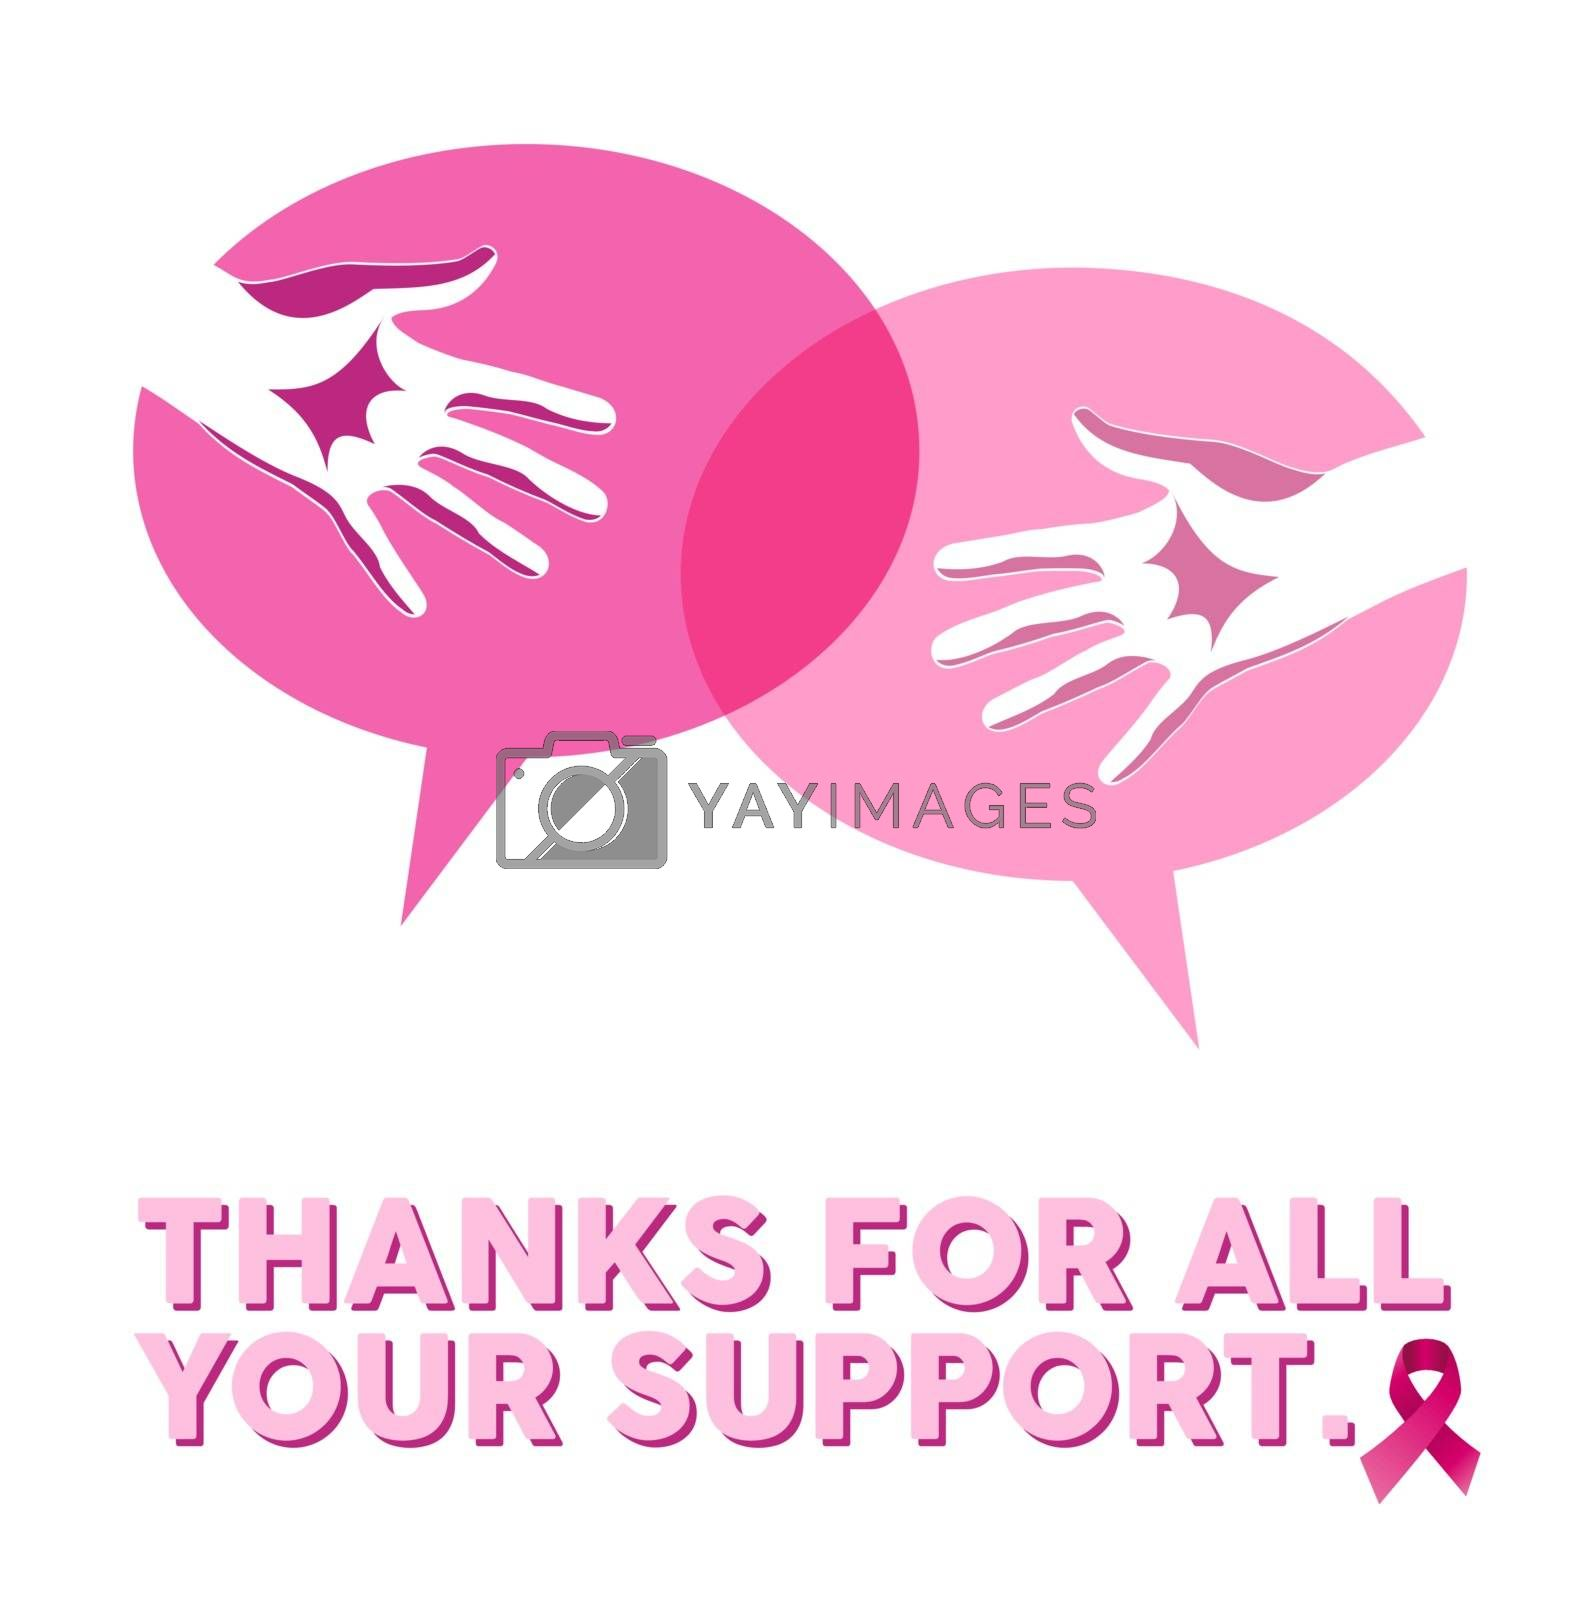 Breast cancer awareness media campaign concept illustration. Help hands in social bubbles, thanks for your support text and pink ribbon sign of cause. EPS10 vector file.